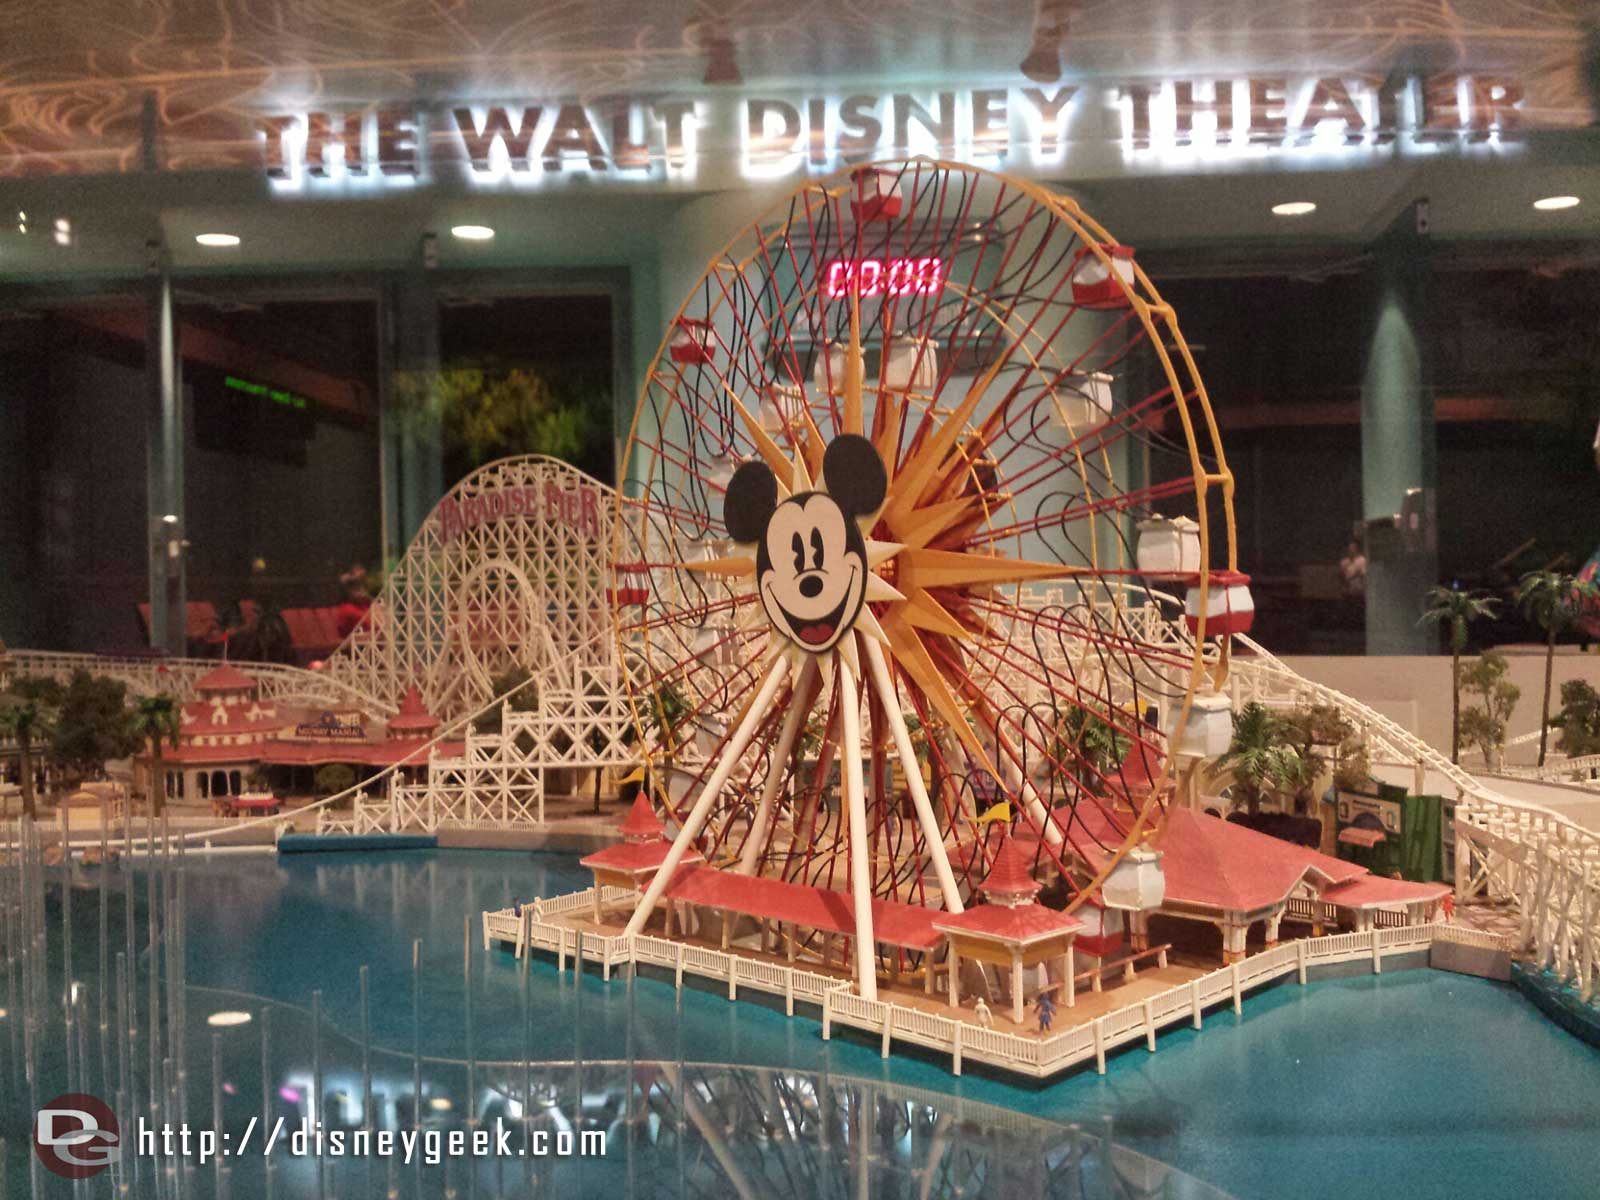 The DCA Paradise Pier model is still in One Man's Dream, too bad that queue did not get built